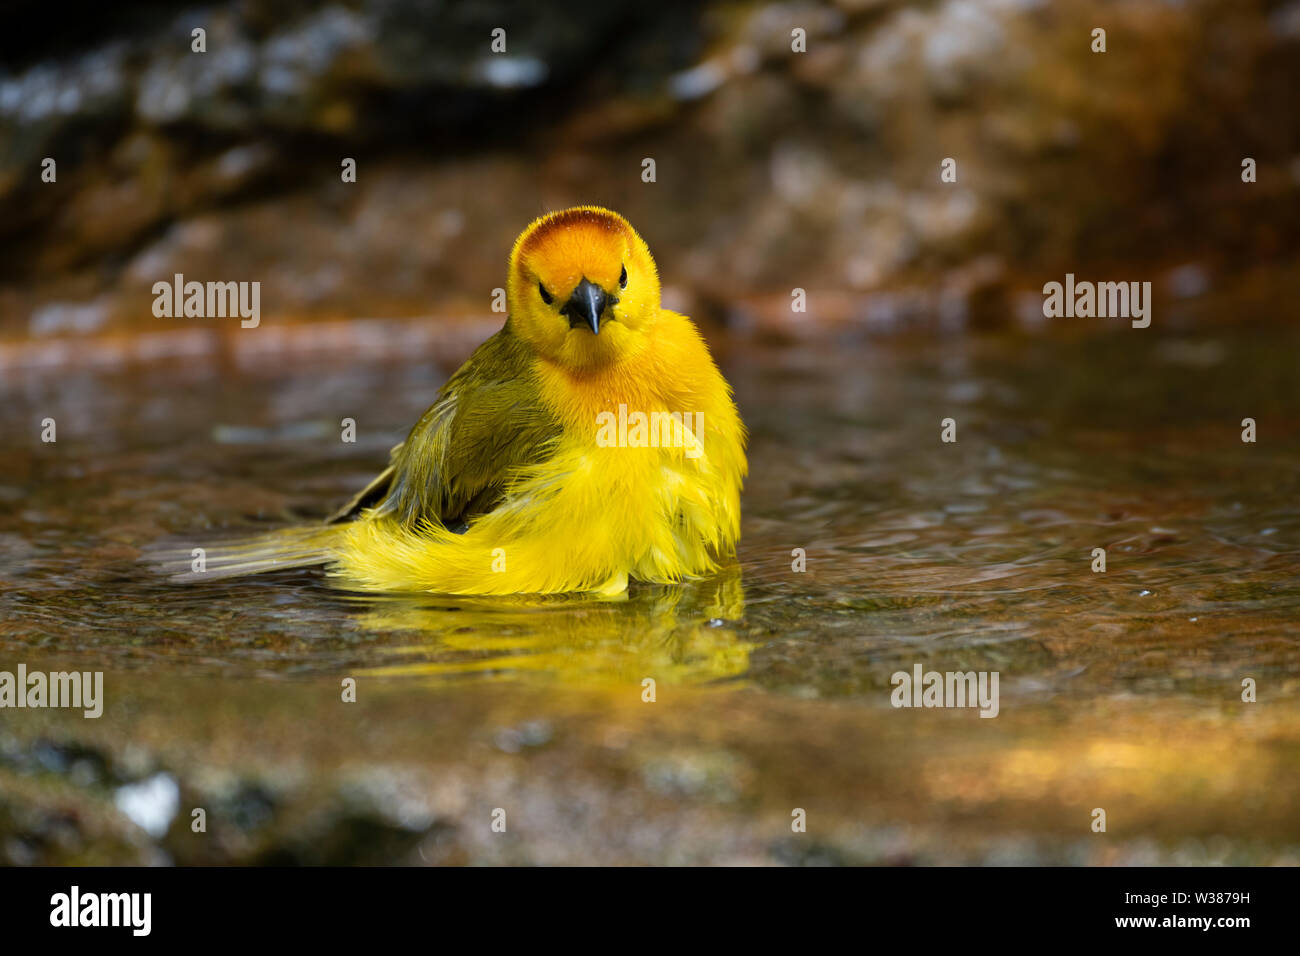 Singapore, Jurong Bird Park. Taveta Golden Weaver (Ploceus castaneiceps) in pool bathing. Native to Africa in Kanya and Tanzania. - Stock Image